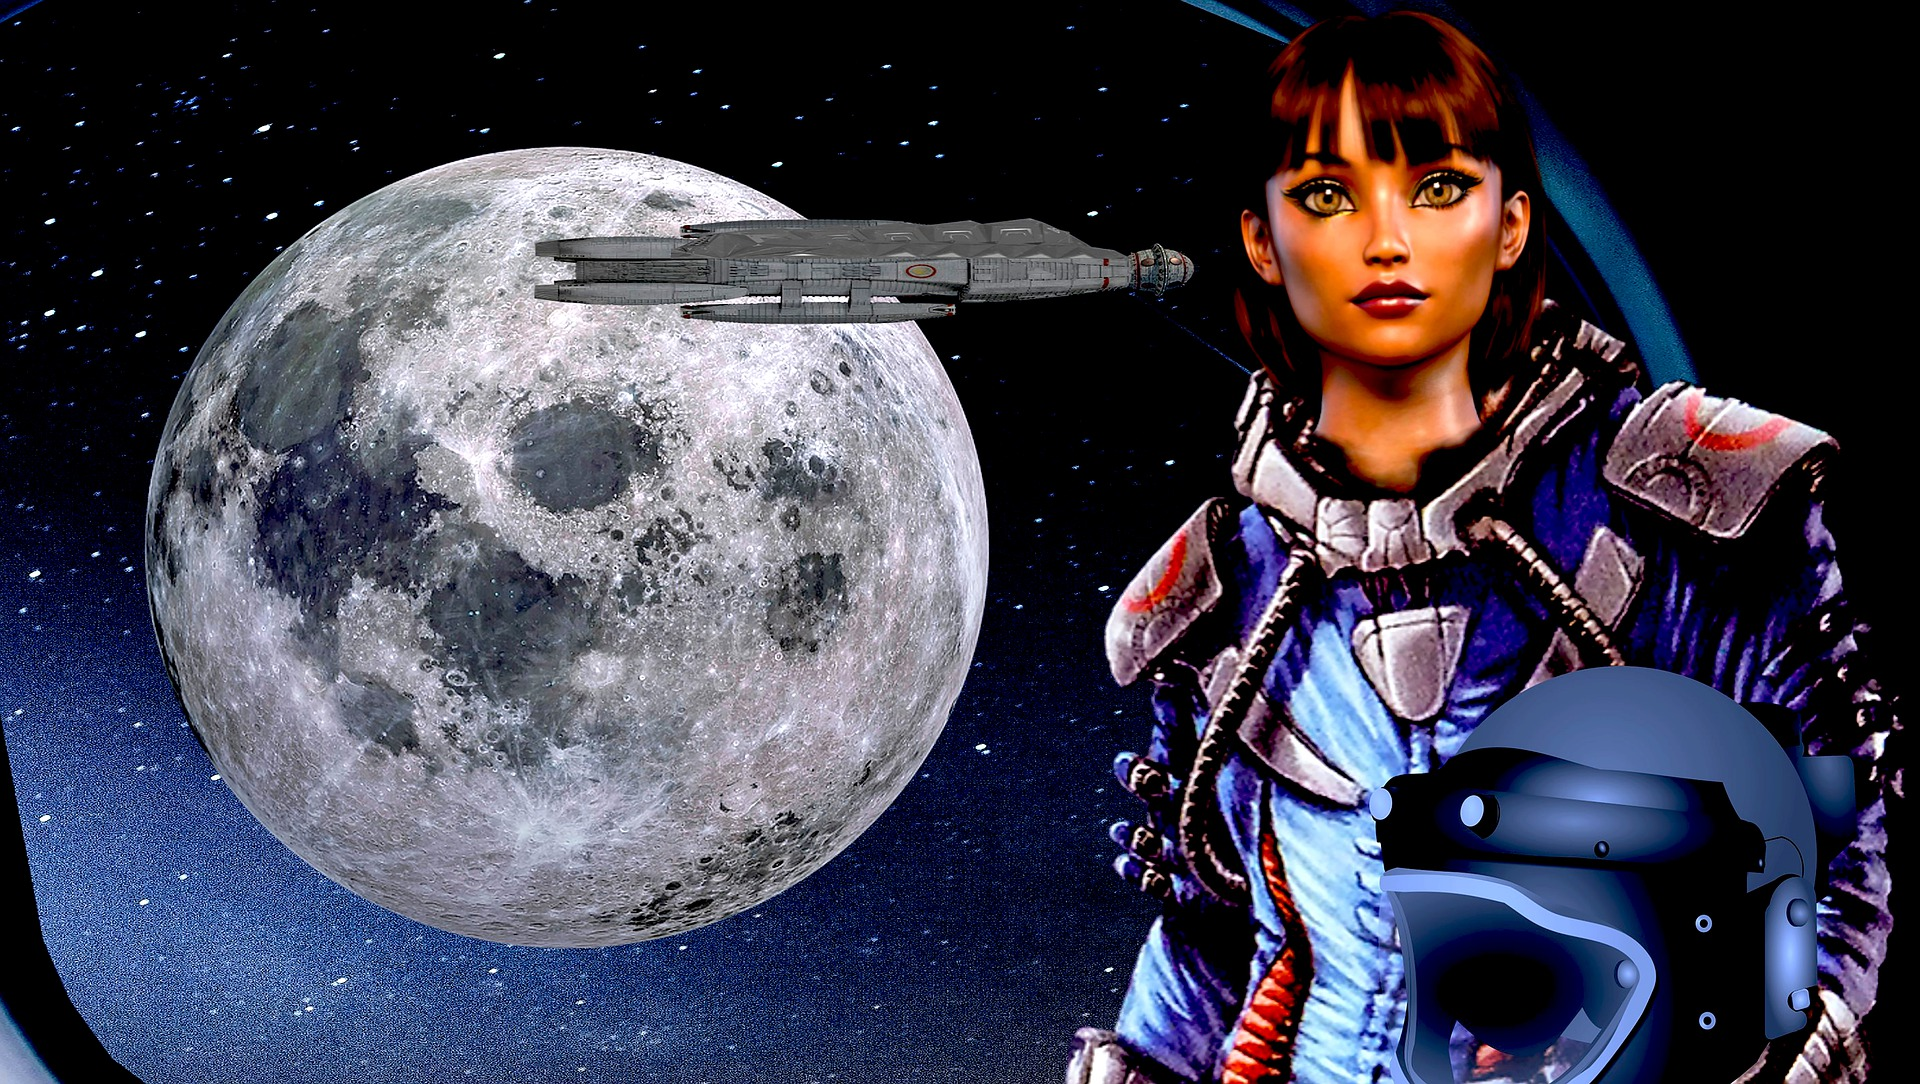 An illustration of a woman wearing a spacesuit with the moon and a spacecraft in the background.